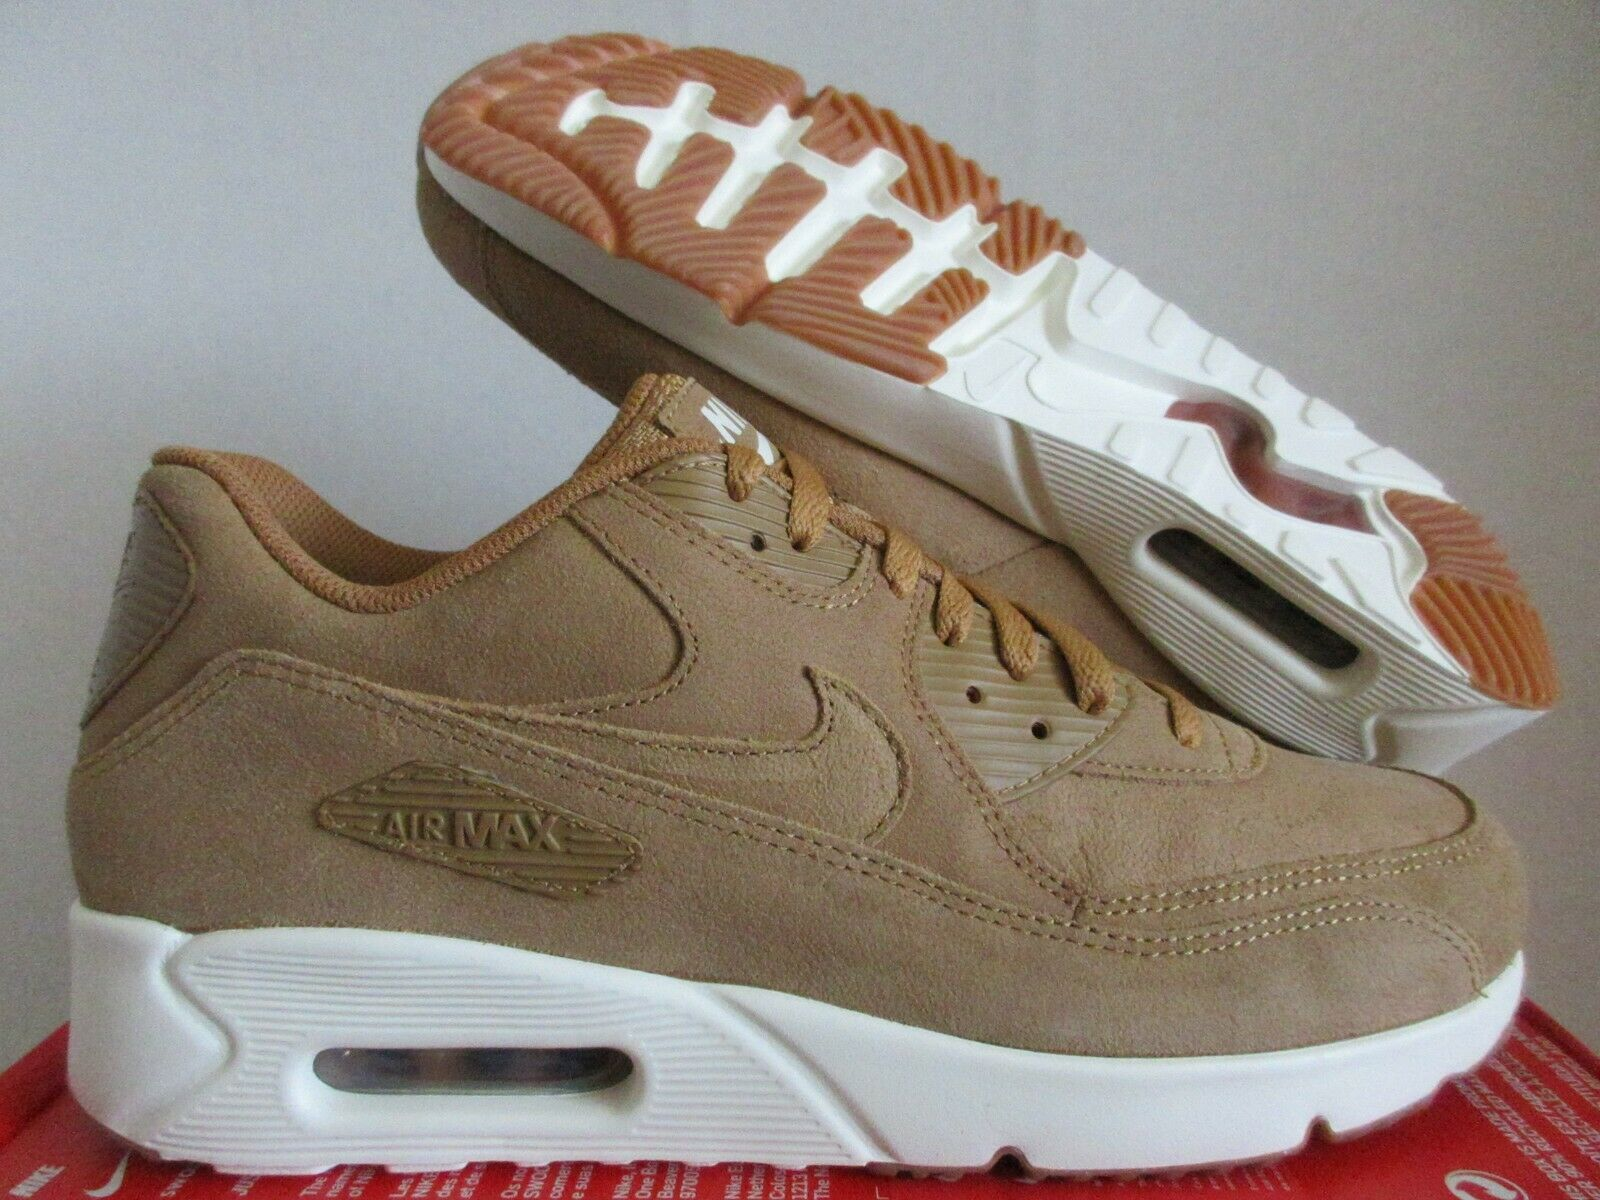 Size 8 - Nike Air Max 90 Ultra 2.0 Wheat 2017 for sale online | eBay